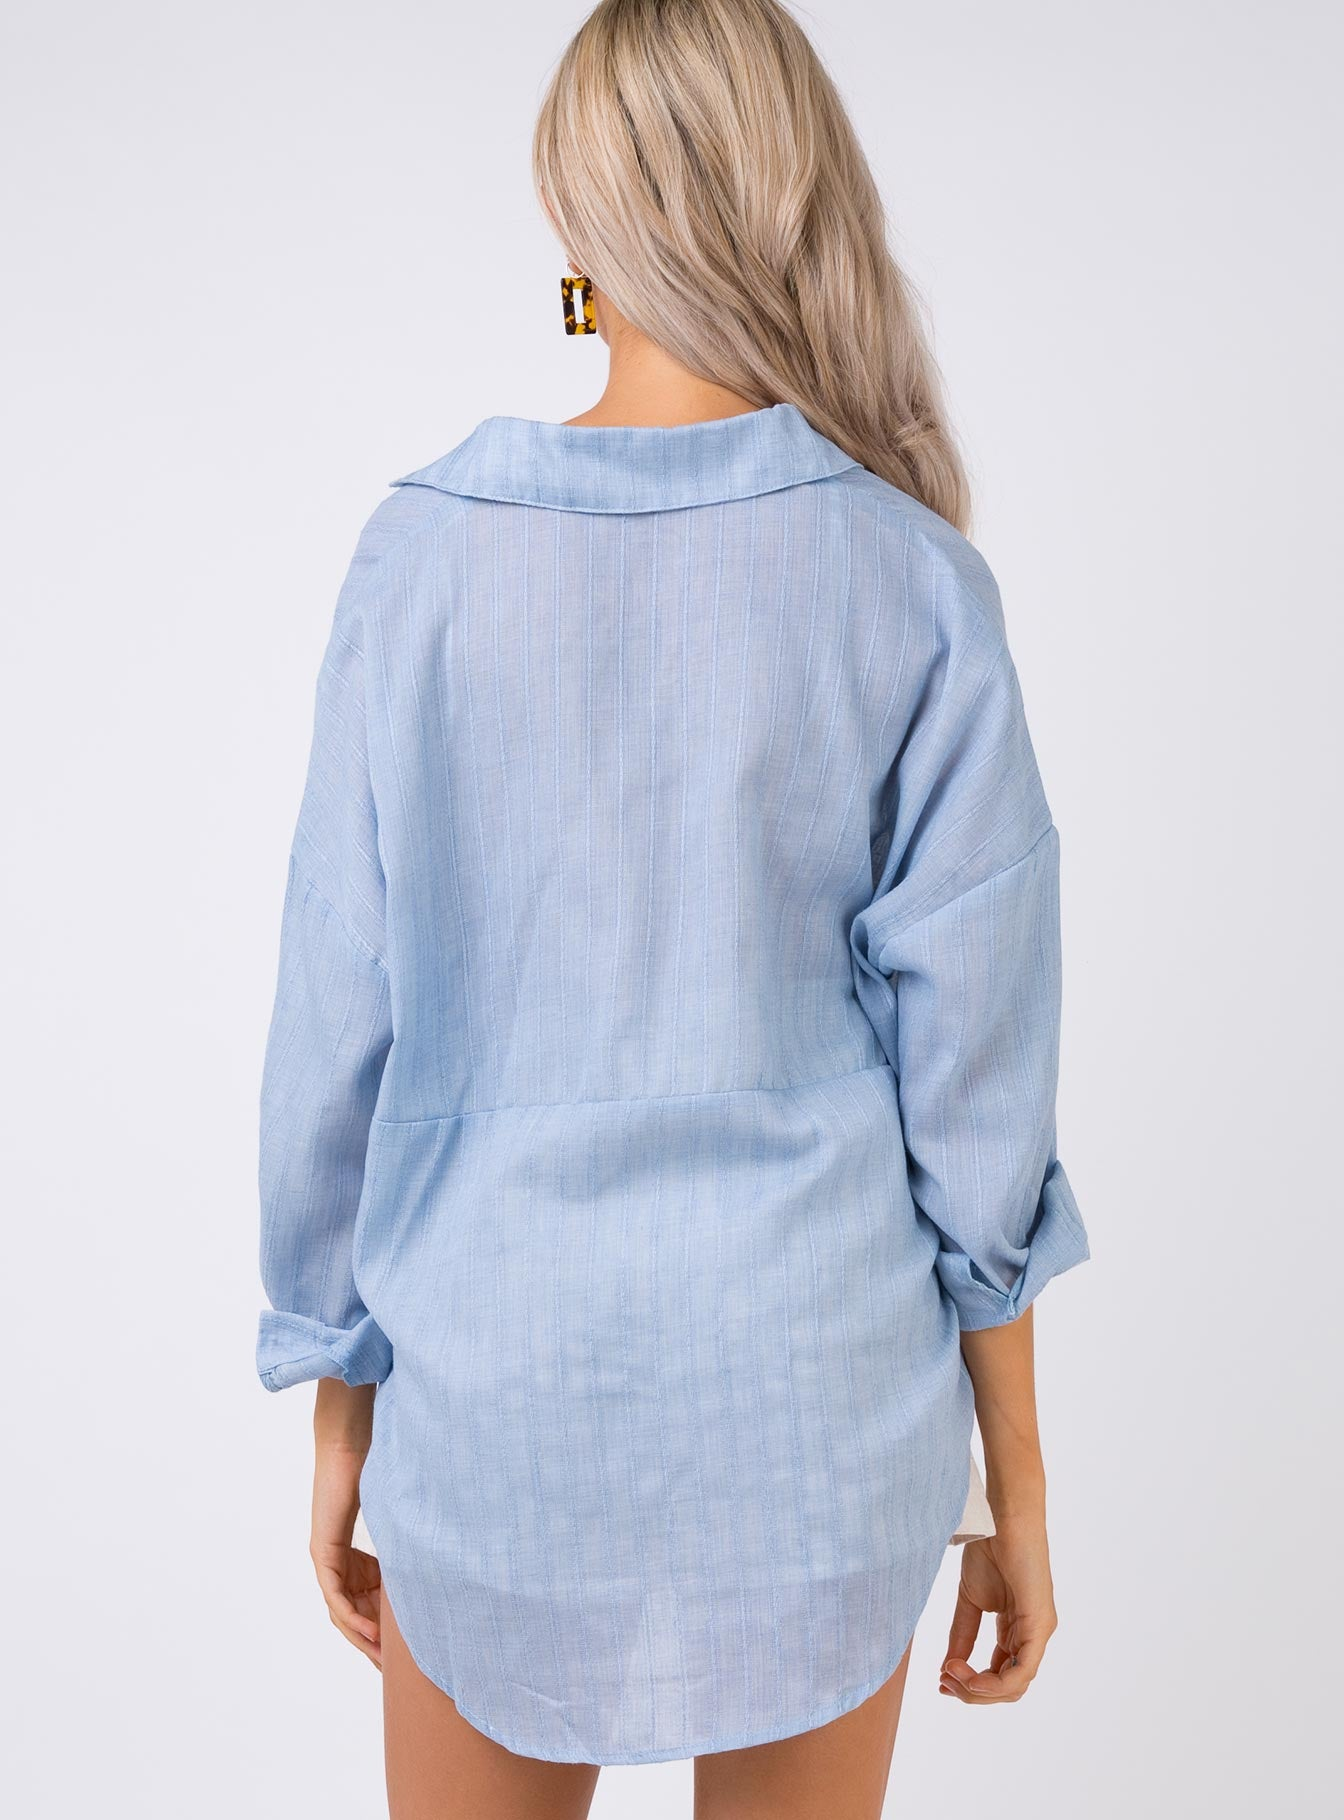 Summer Sandbar Top Blue